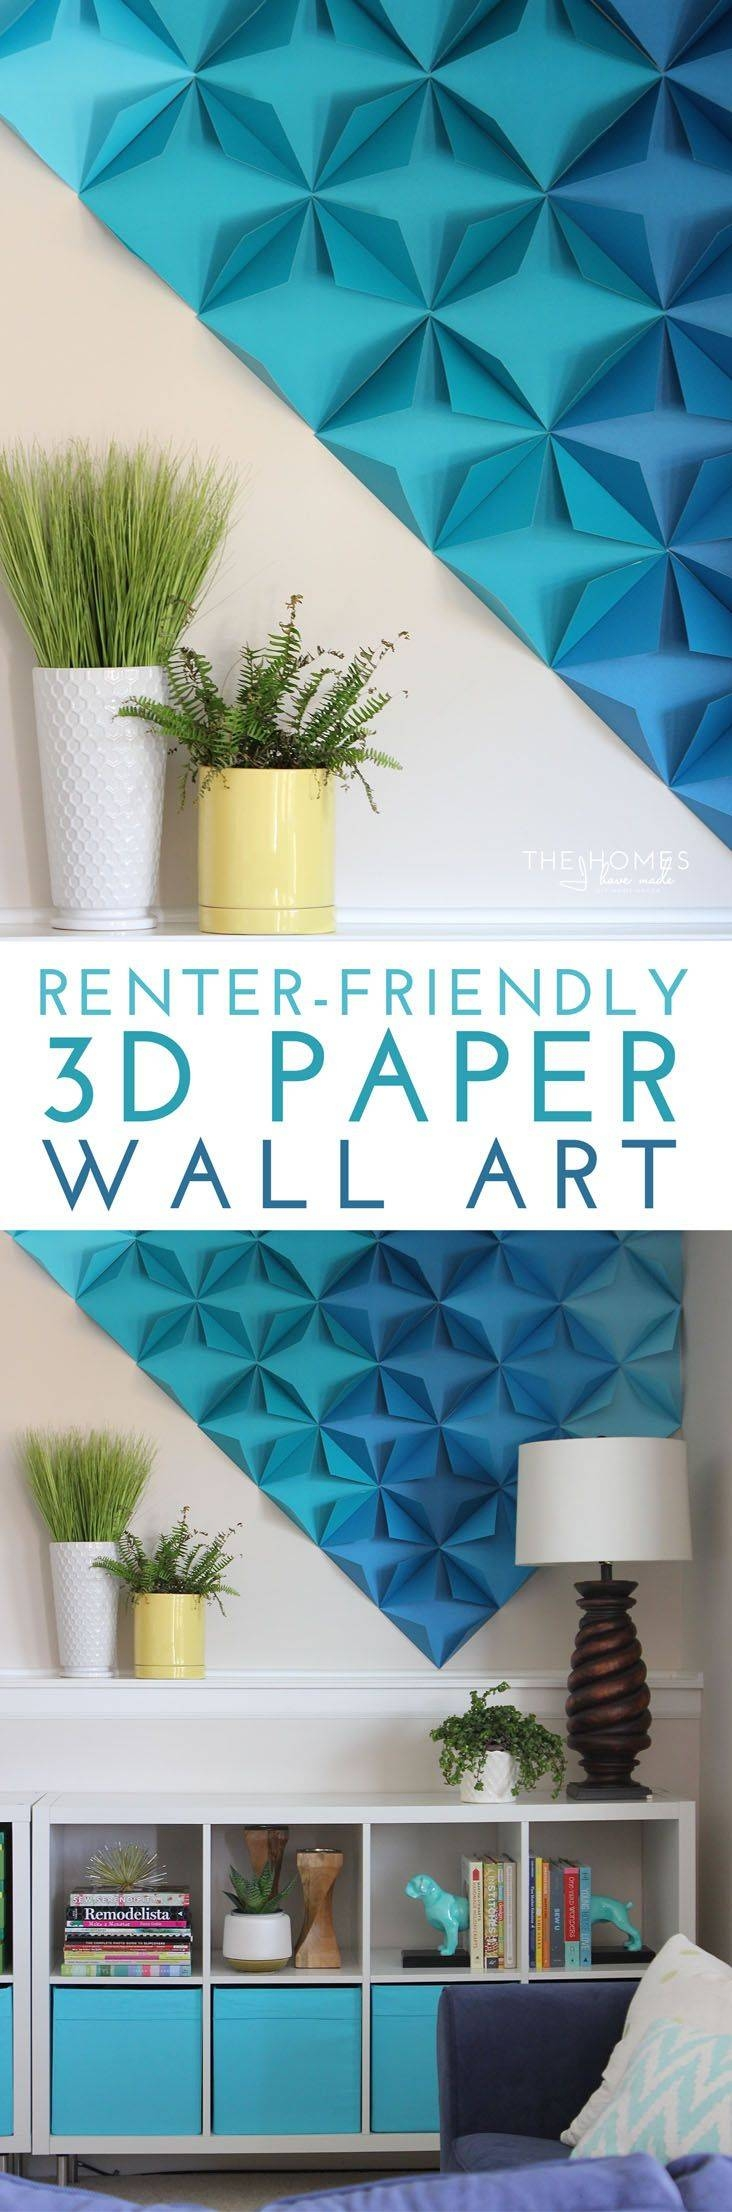 25+ Unique 3D Wall Art Ideas On Pinterest | Butterfly Wall, Diy Within 2018 Great Wall Of China 3D Wall Art (View 1 of 20)